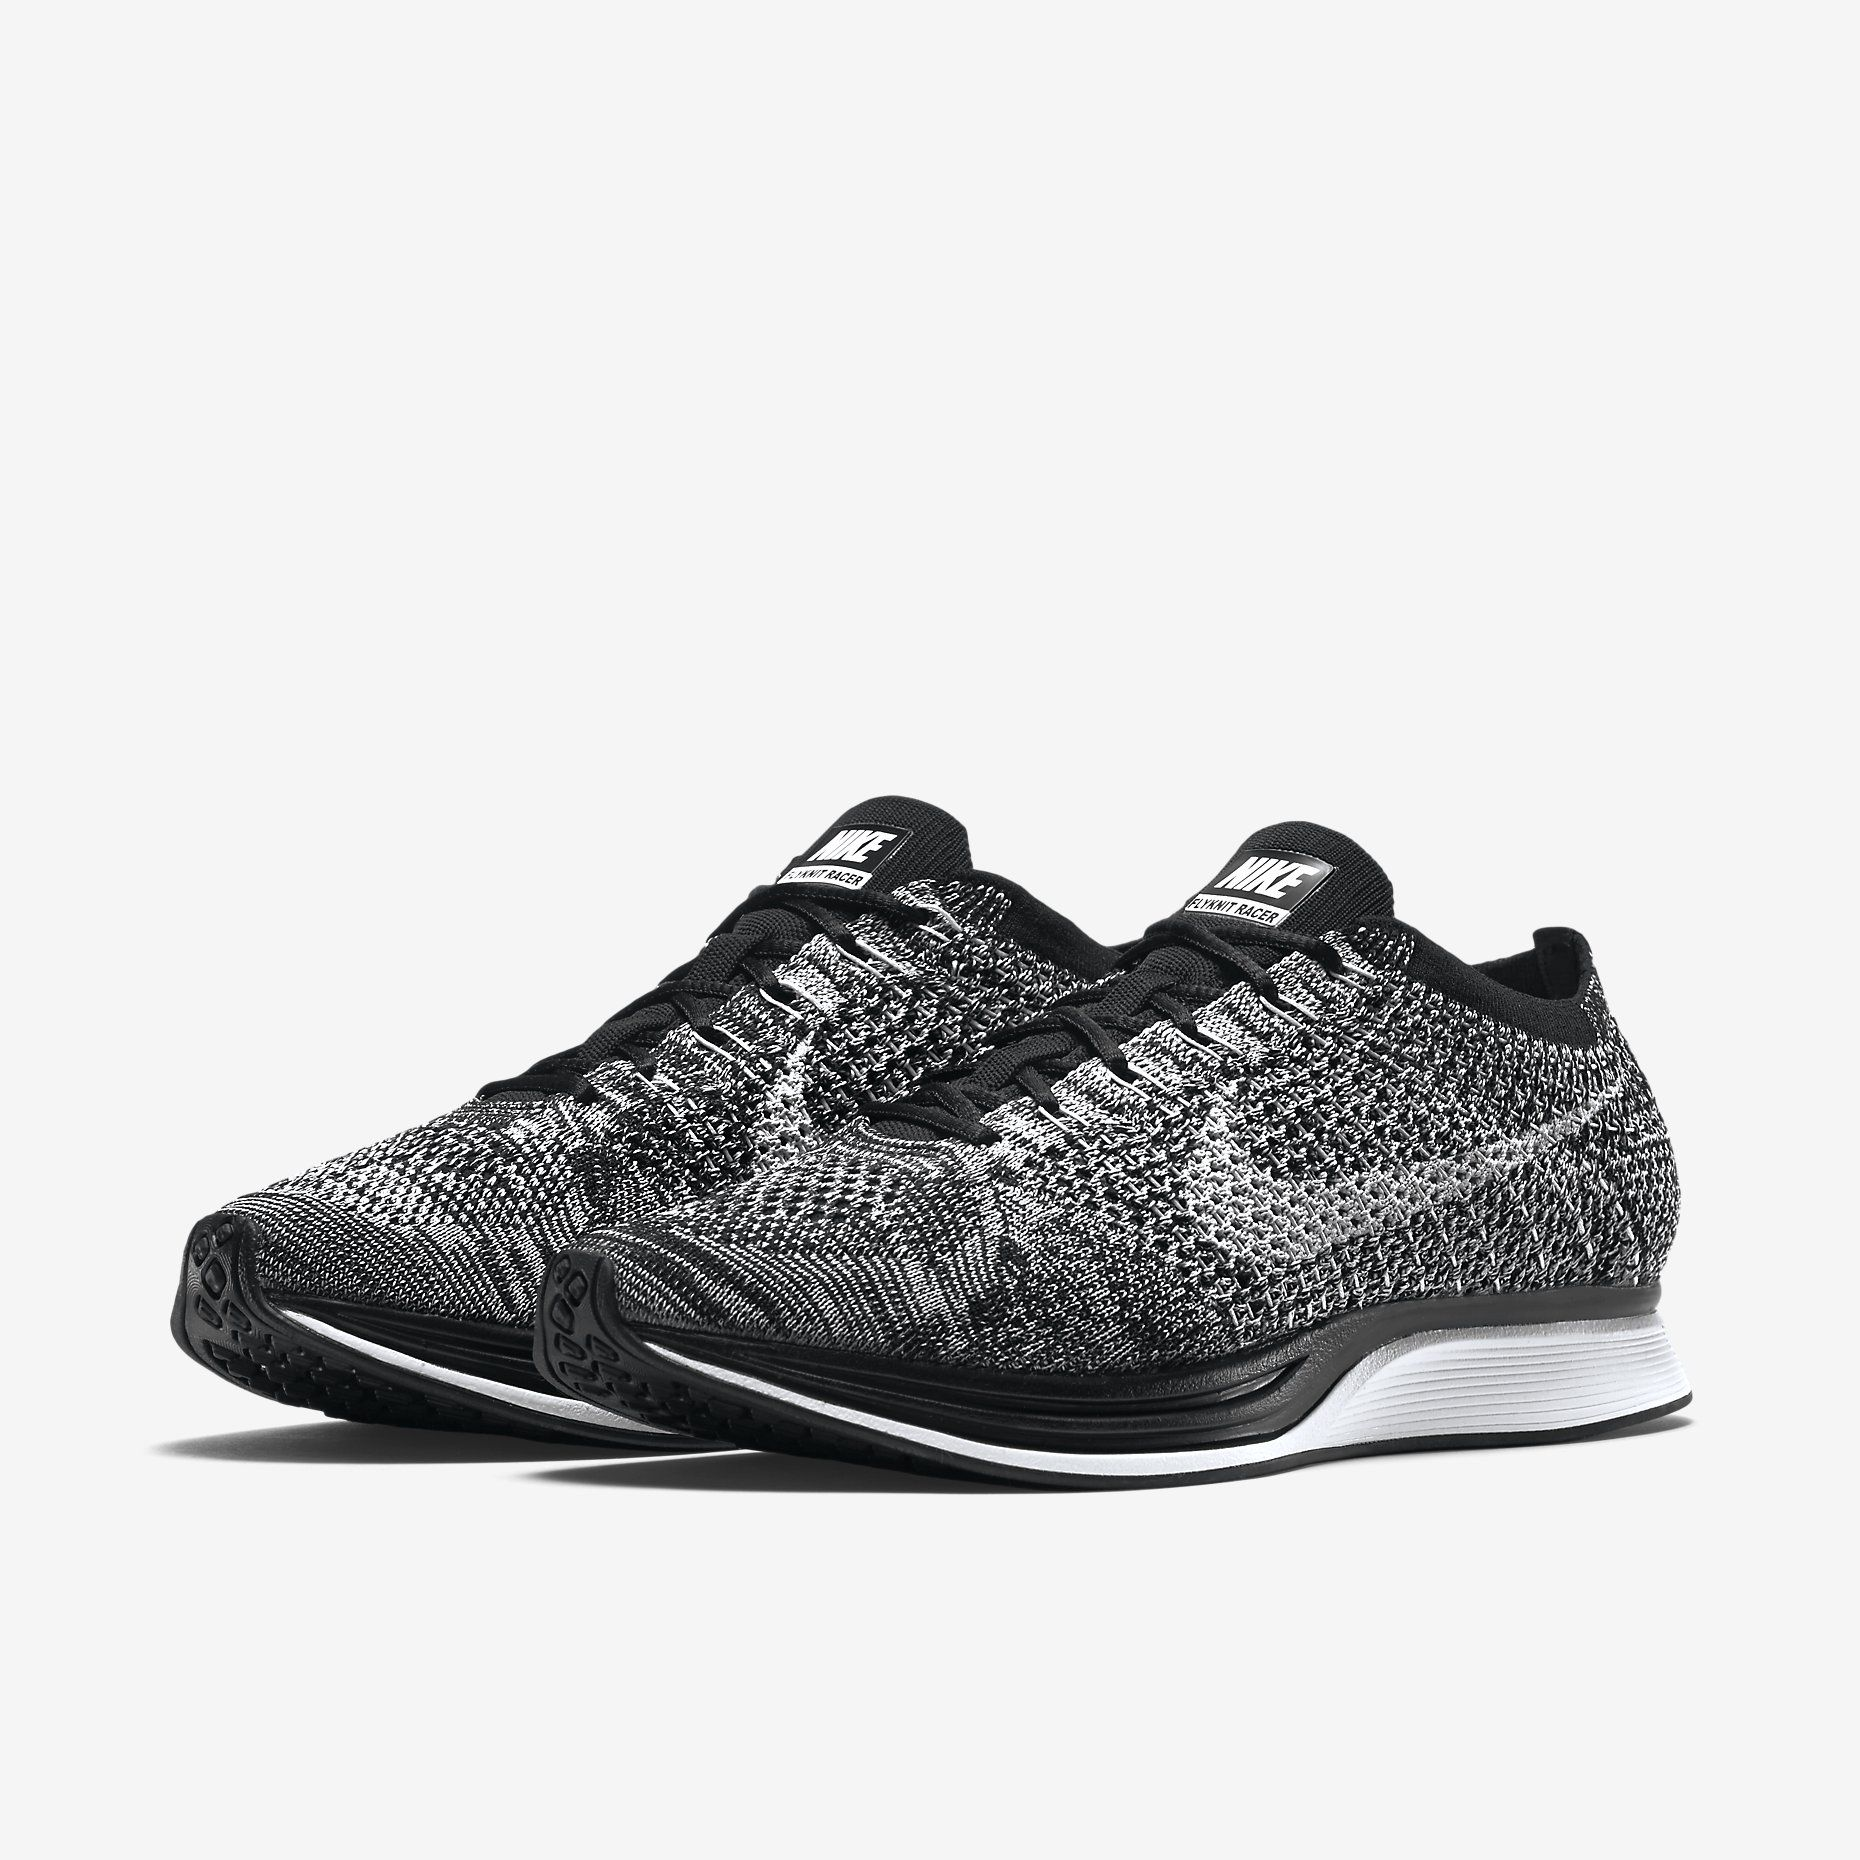 site full of Chaussures 50% store off 6442b 0c973 nike store 50% flyknit racer dc33a7